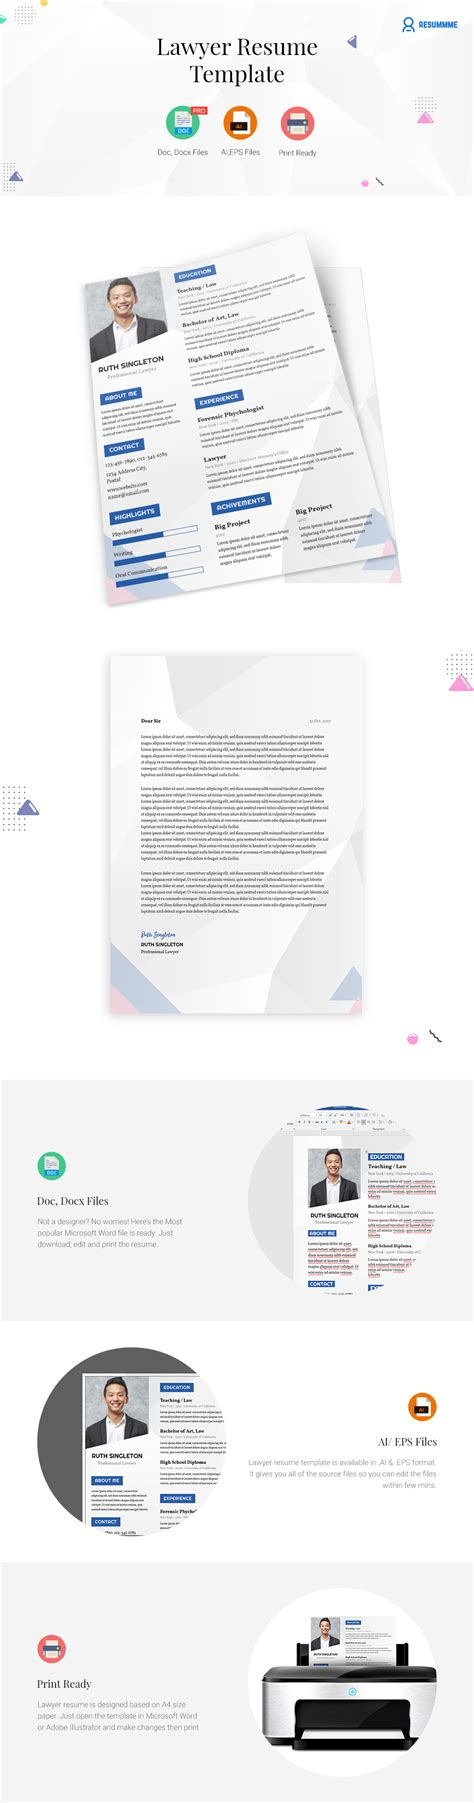 adobe illustrator templates free 100 adobe illustrator resume template 9 creative resume